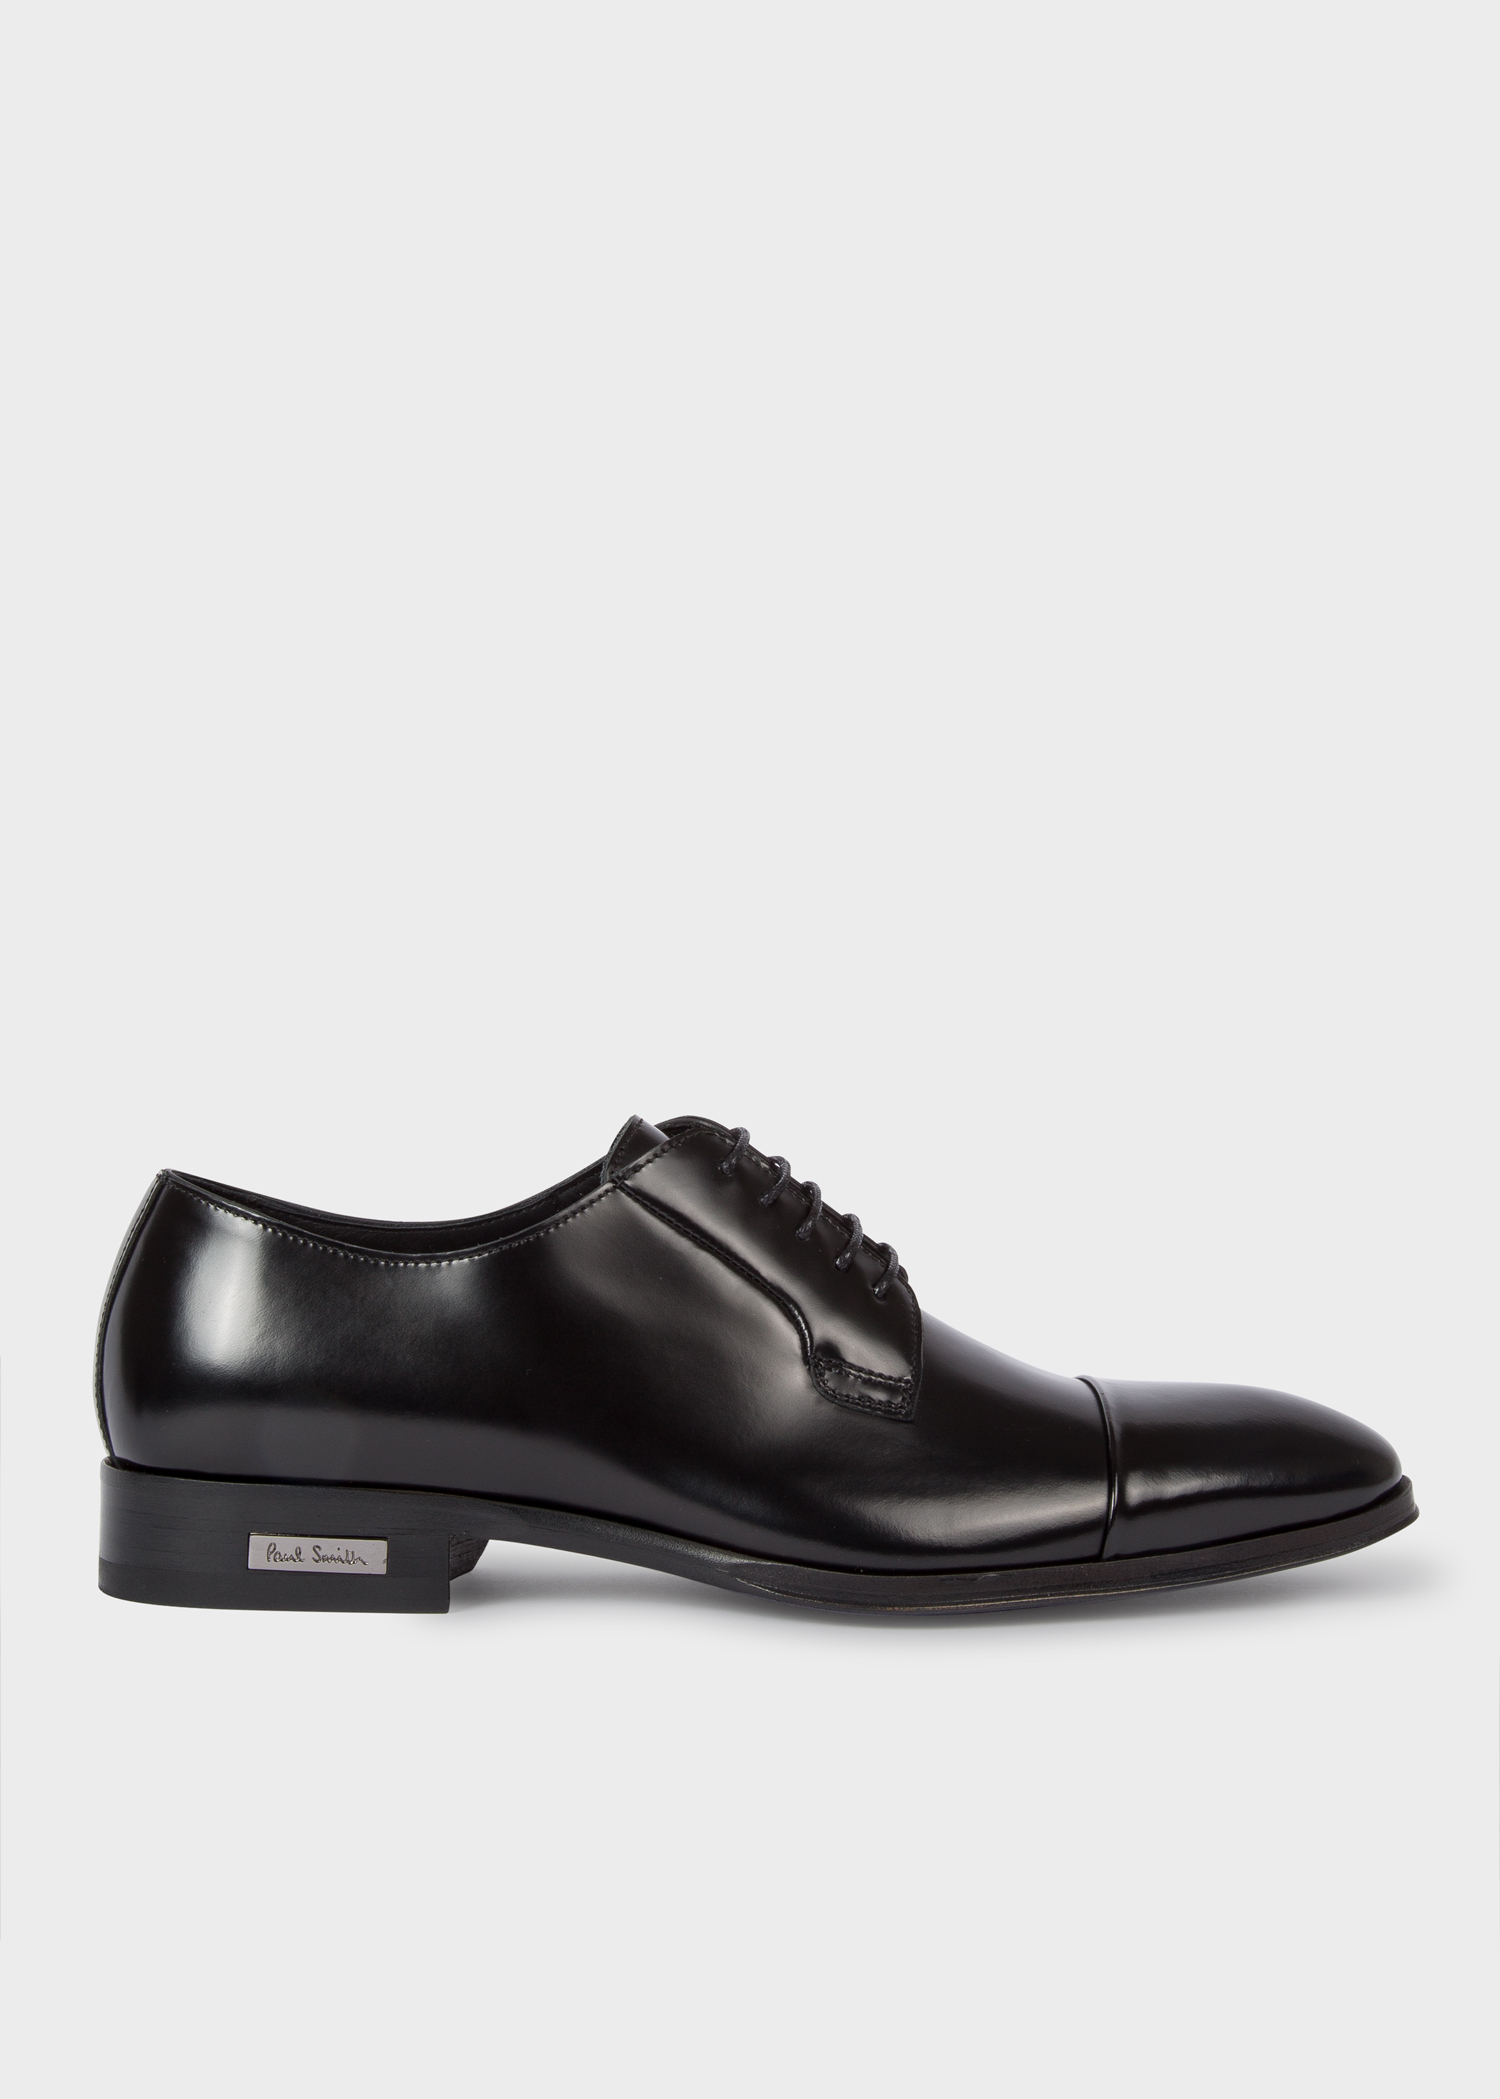 cc0ba8c3eb Men's Black Leather 'Spencer' Derby Shoes - Paul Smith